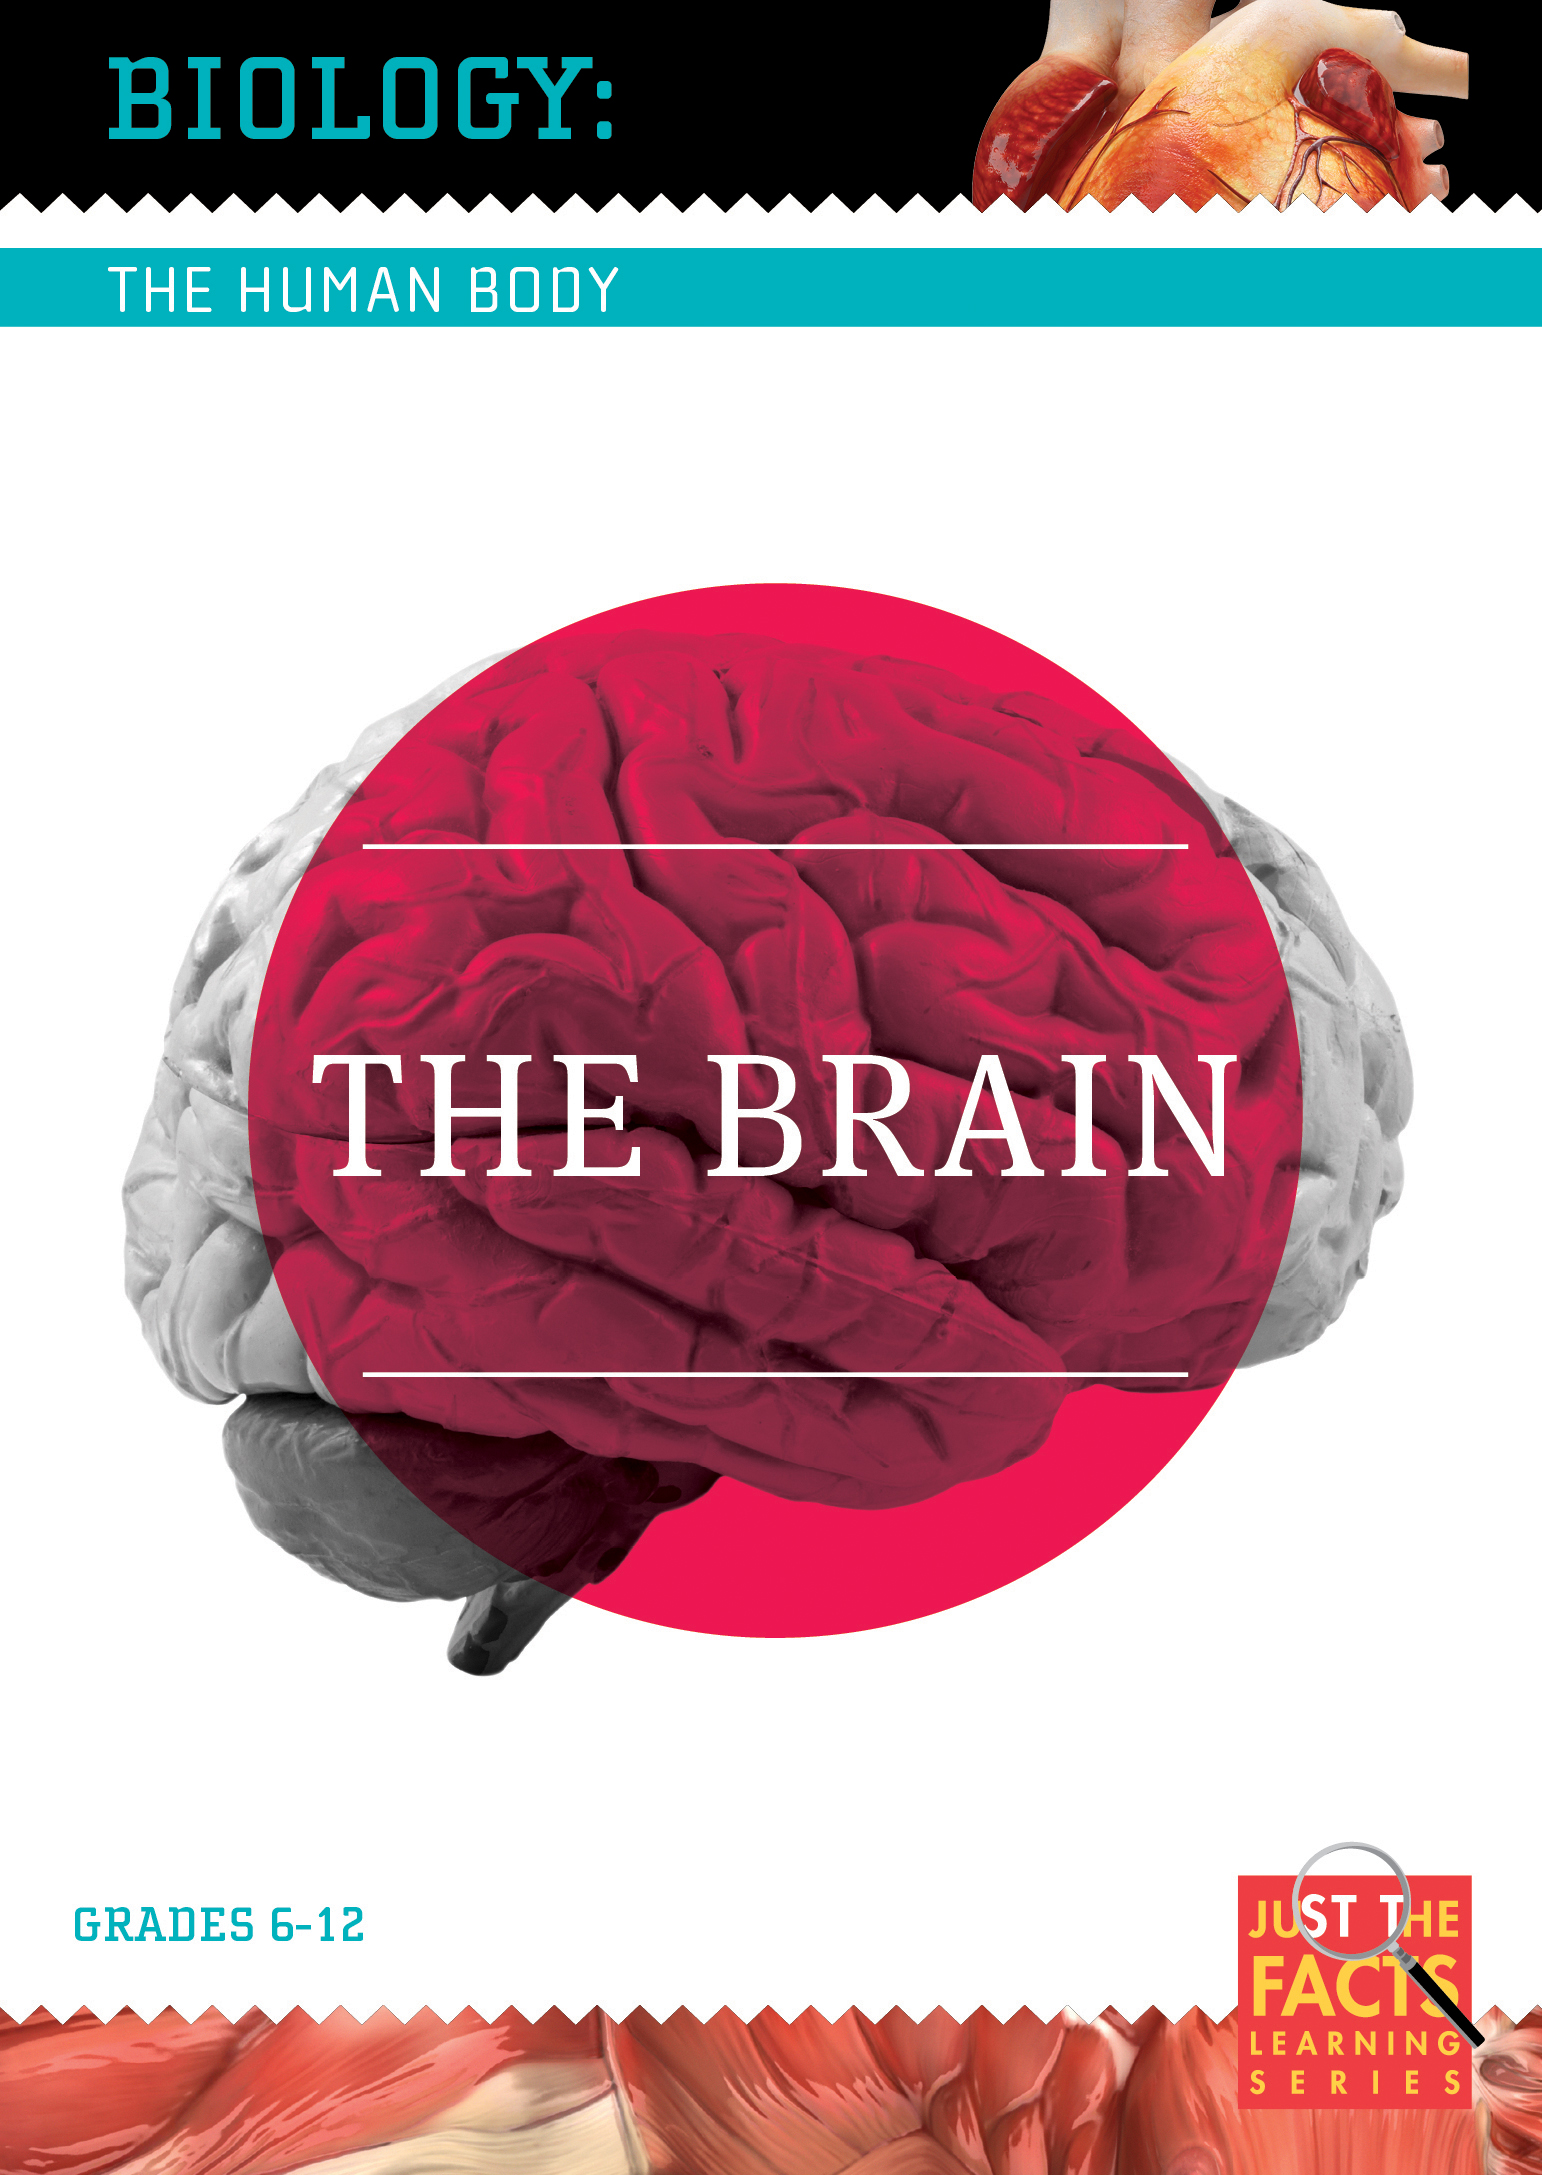 Biology of the Human Body: The Brain